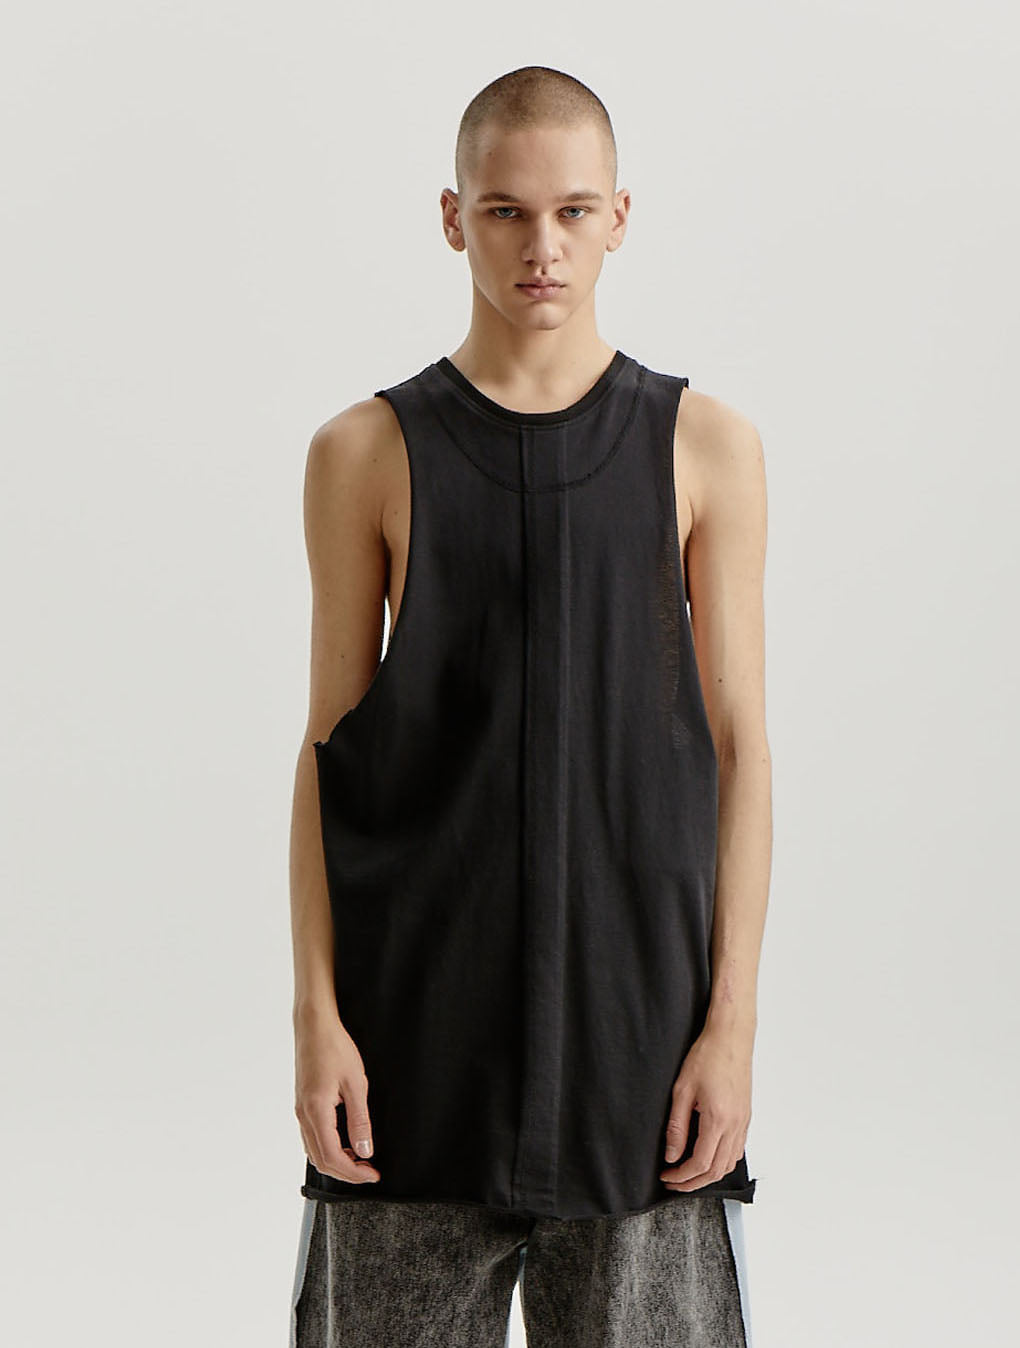 Black Cut Out Top Stitched Sleeveless Jersey T-shirt